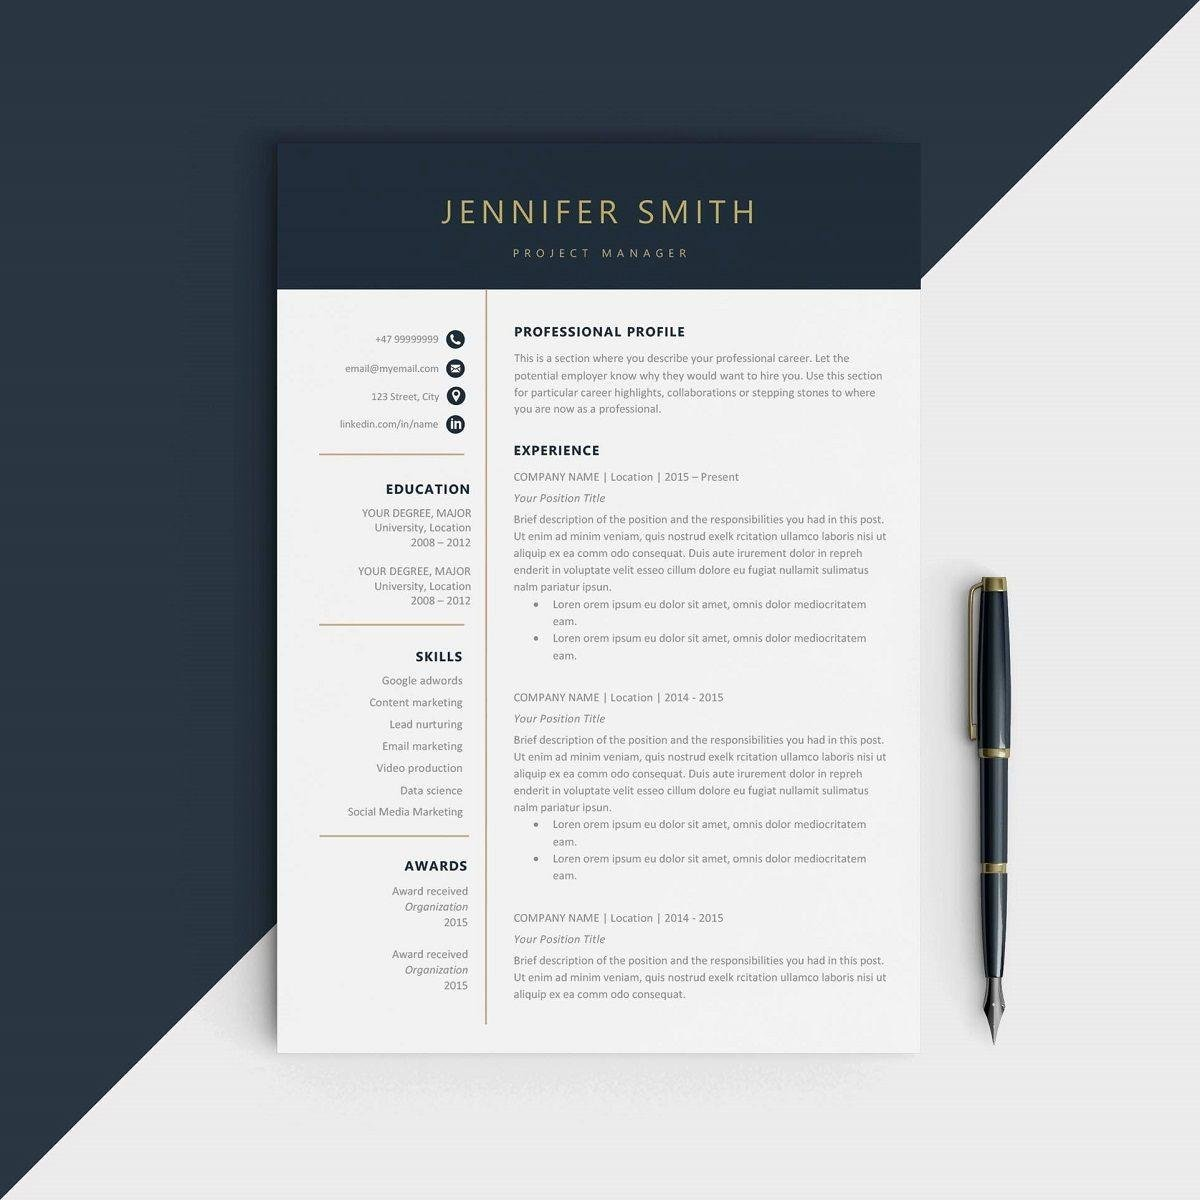 sample modern resume for project manager - Sample Modern Resume